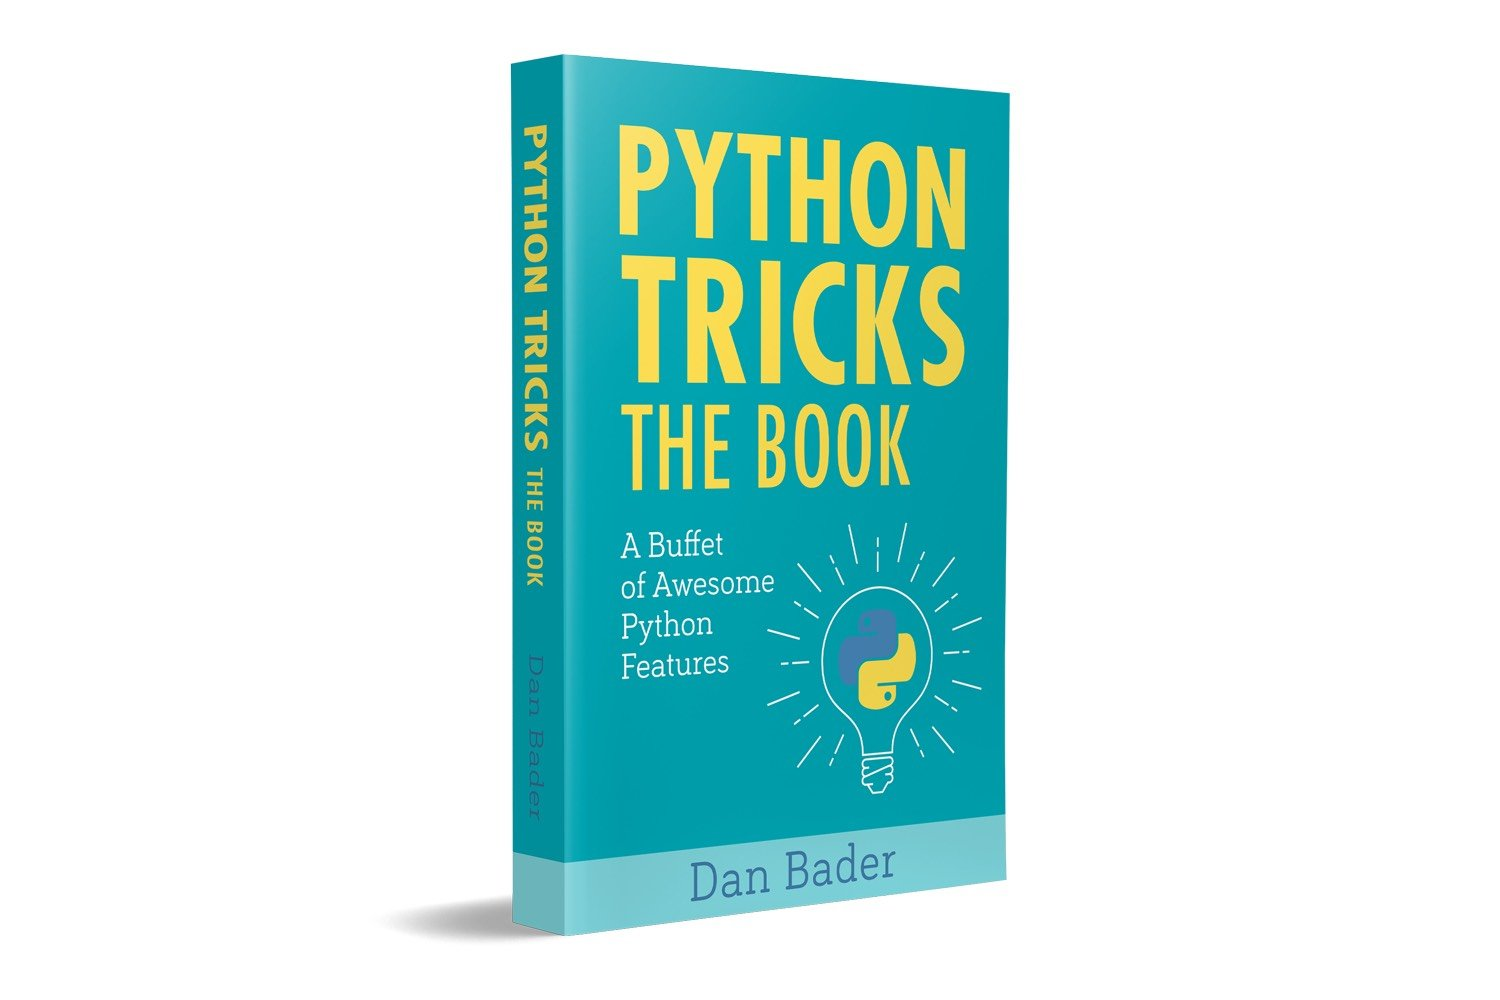 Python Tricks: The Book